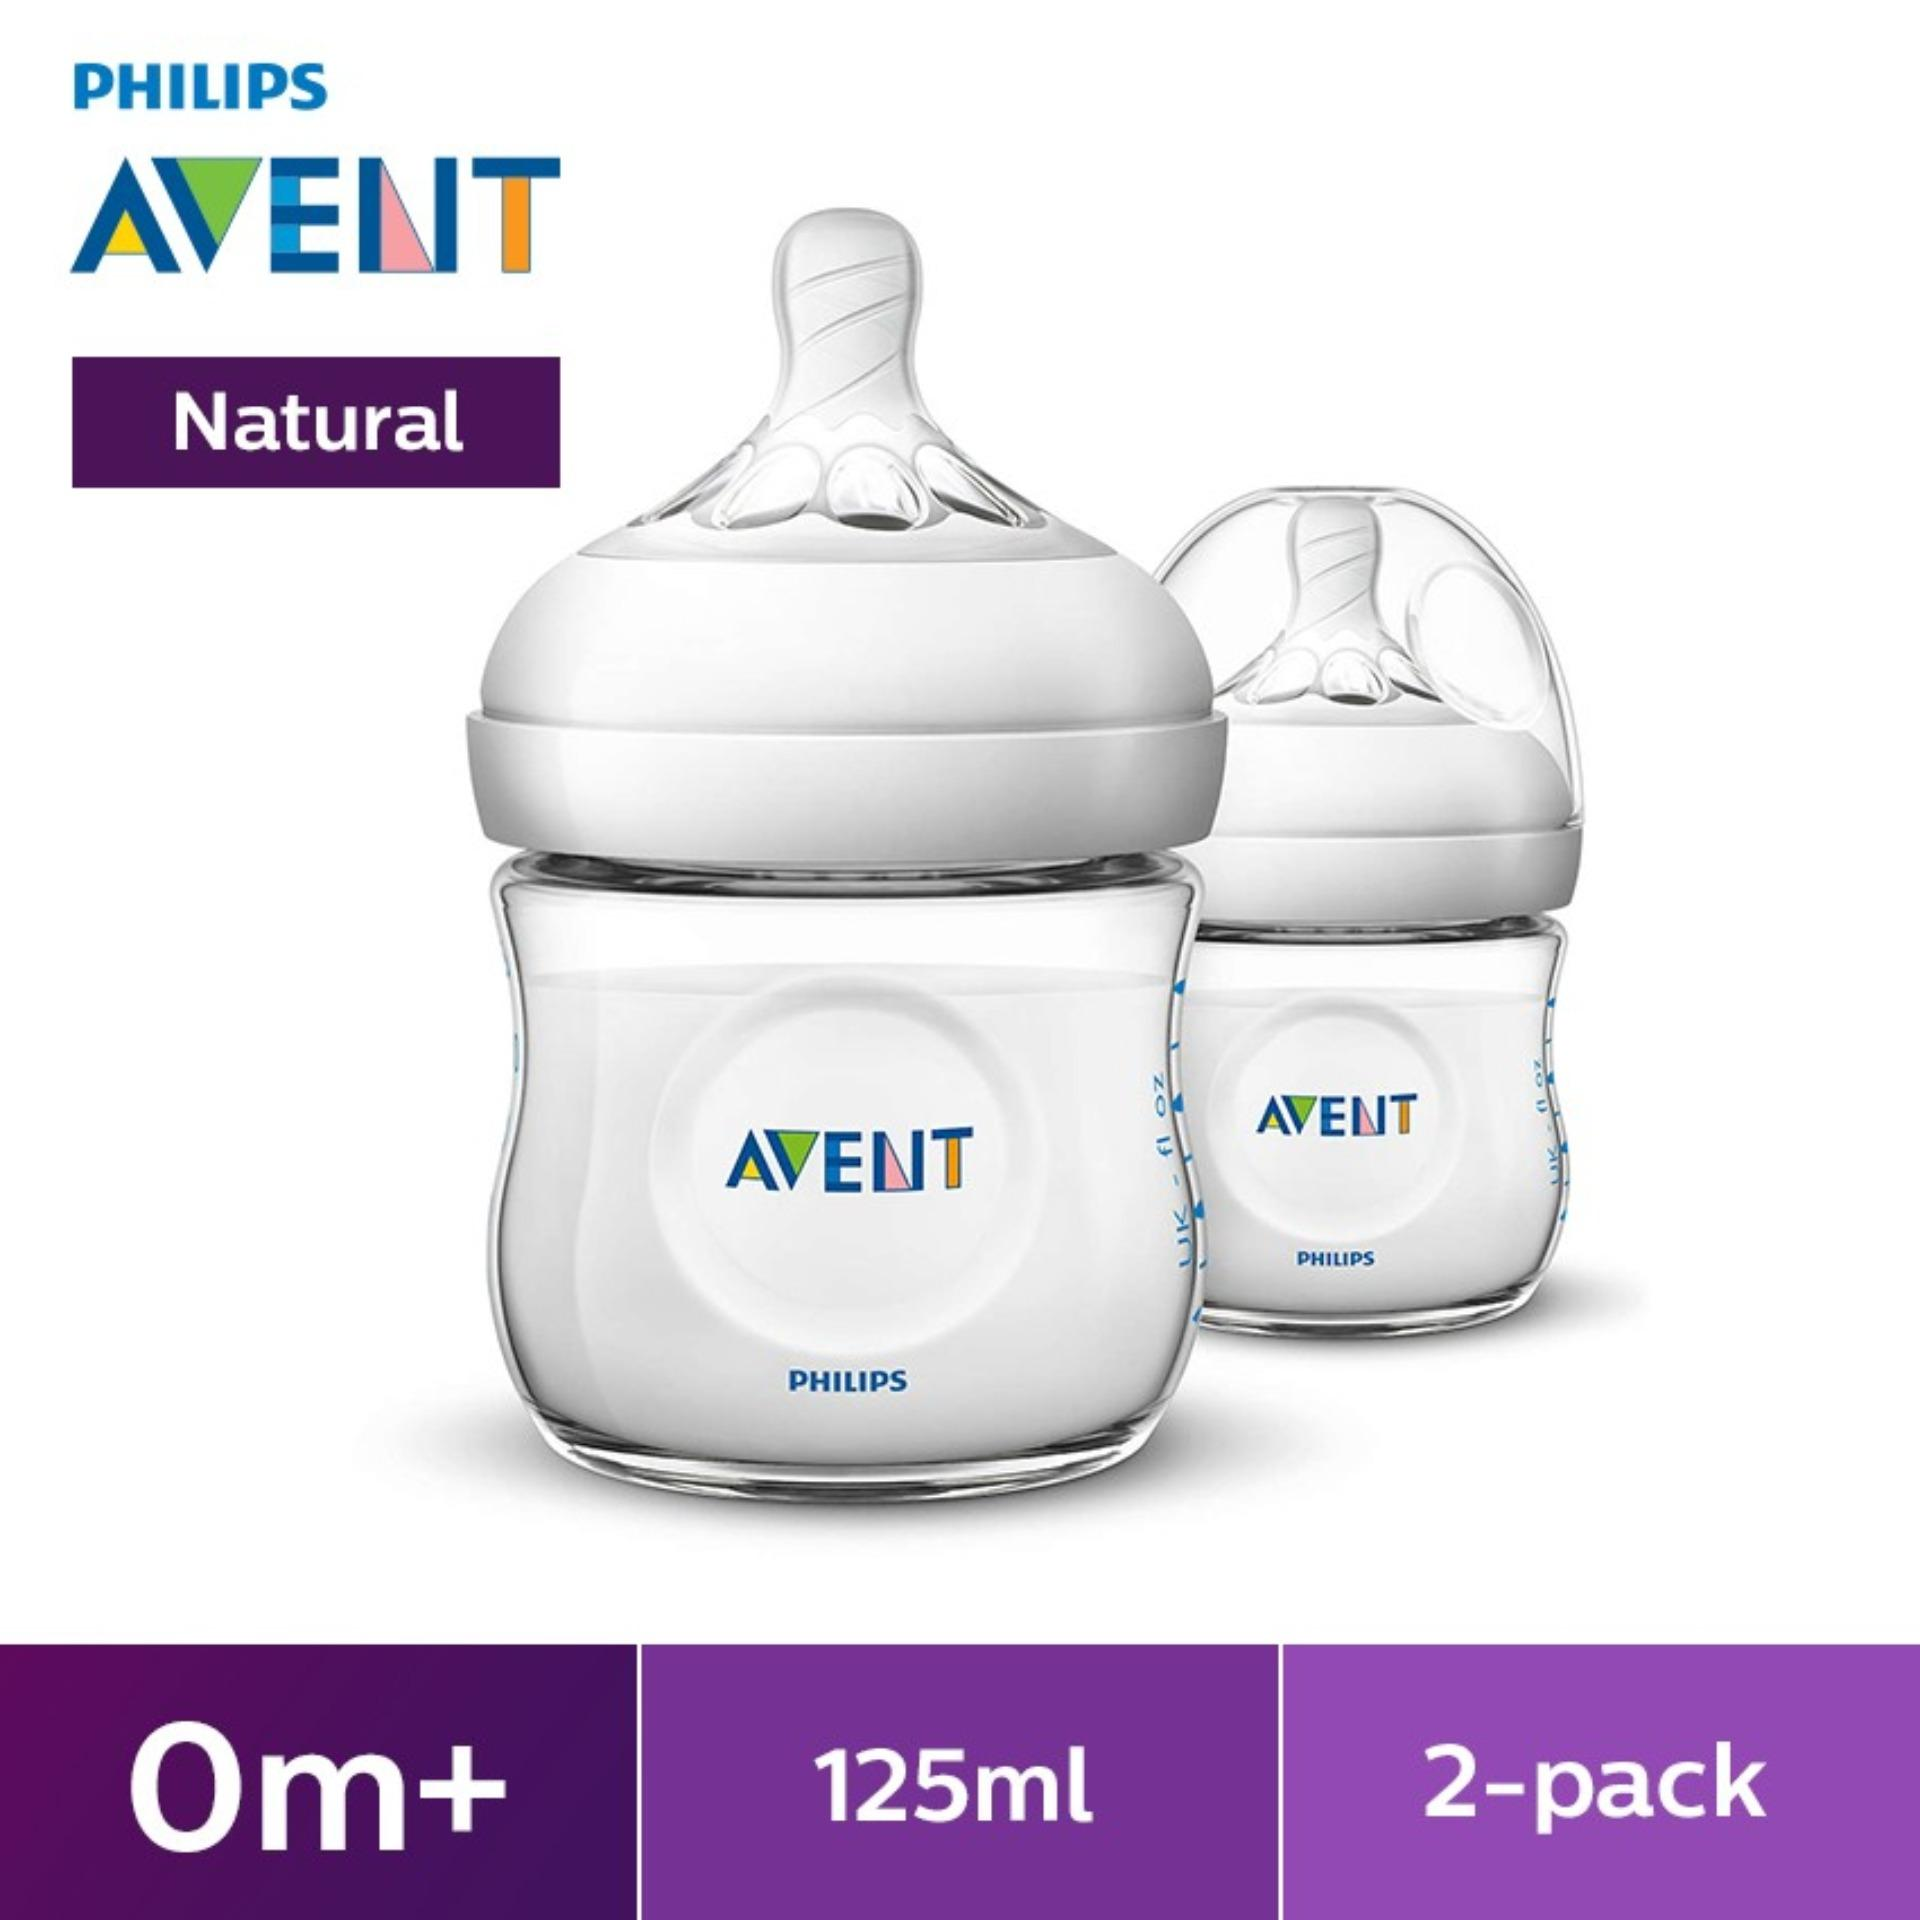 Philips Avent Natural 4oz Bottle Twin Pack By Lazada Retail Philips Avent.